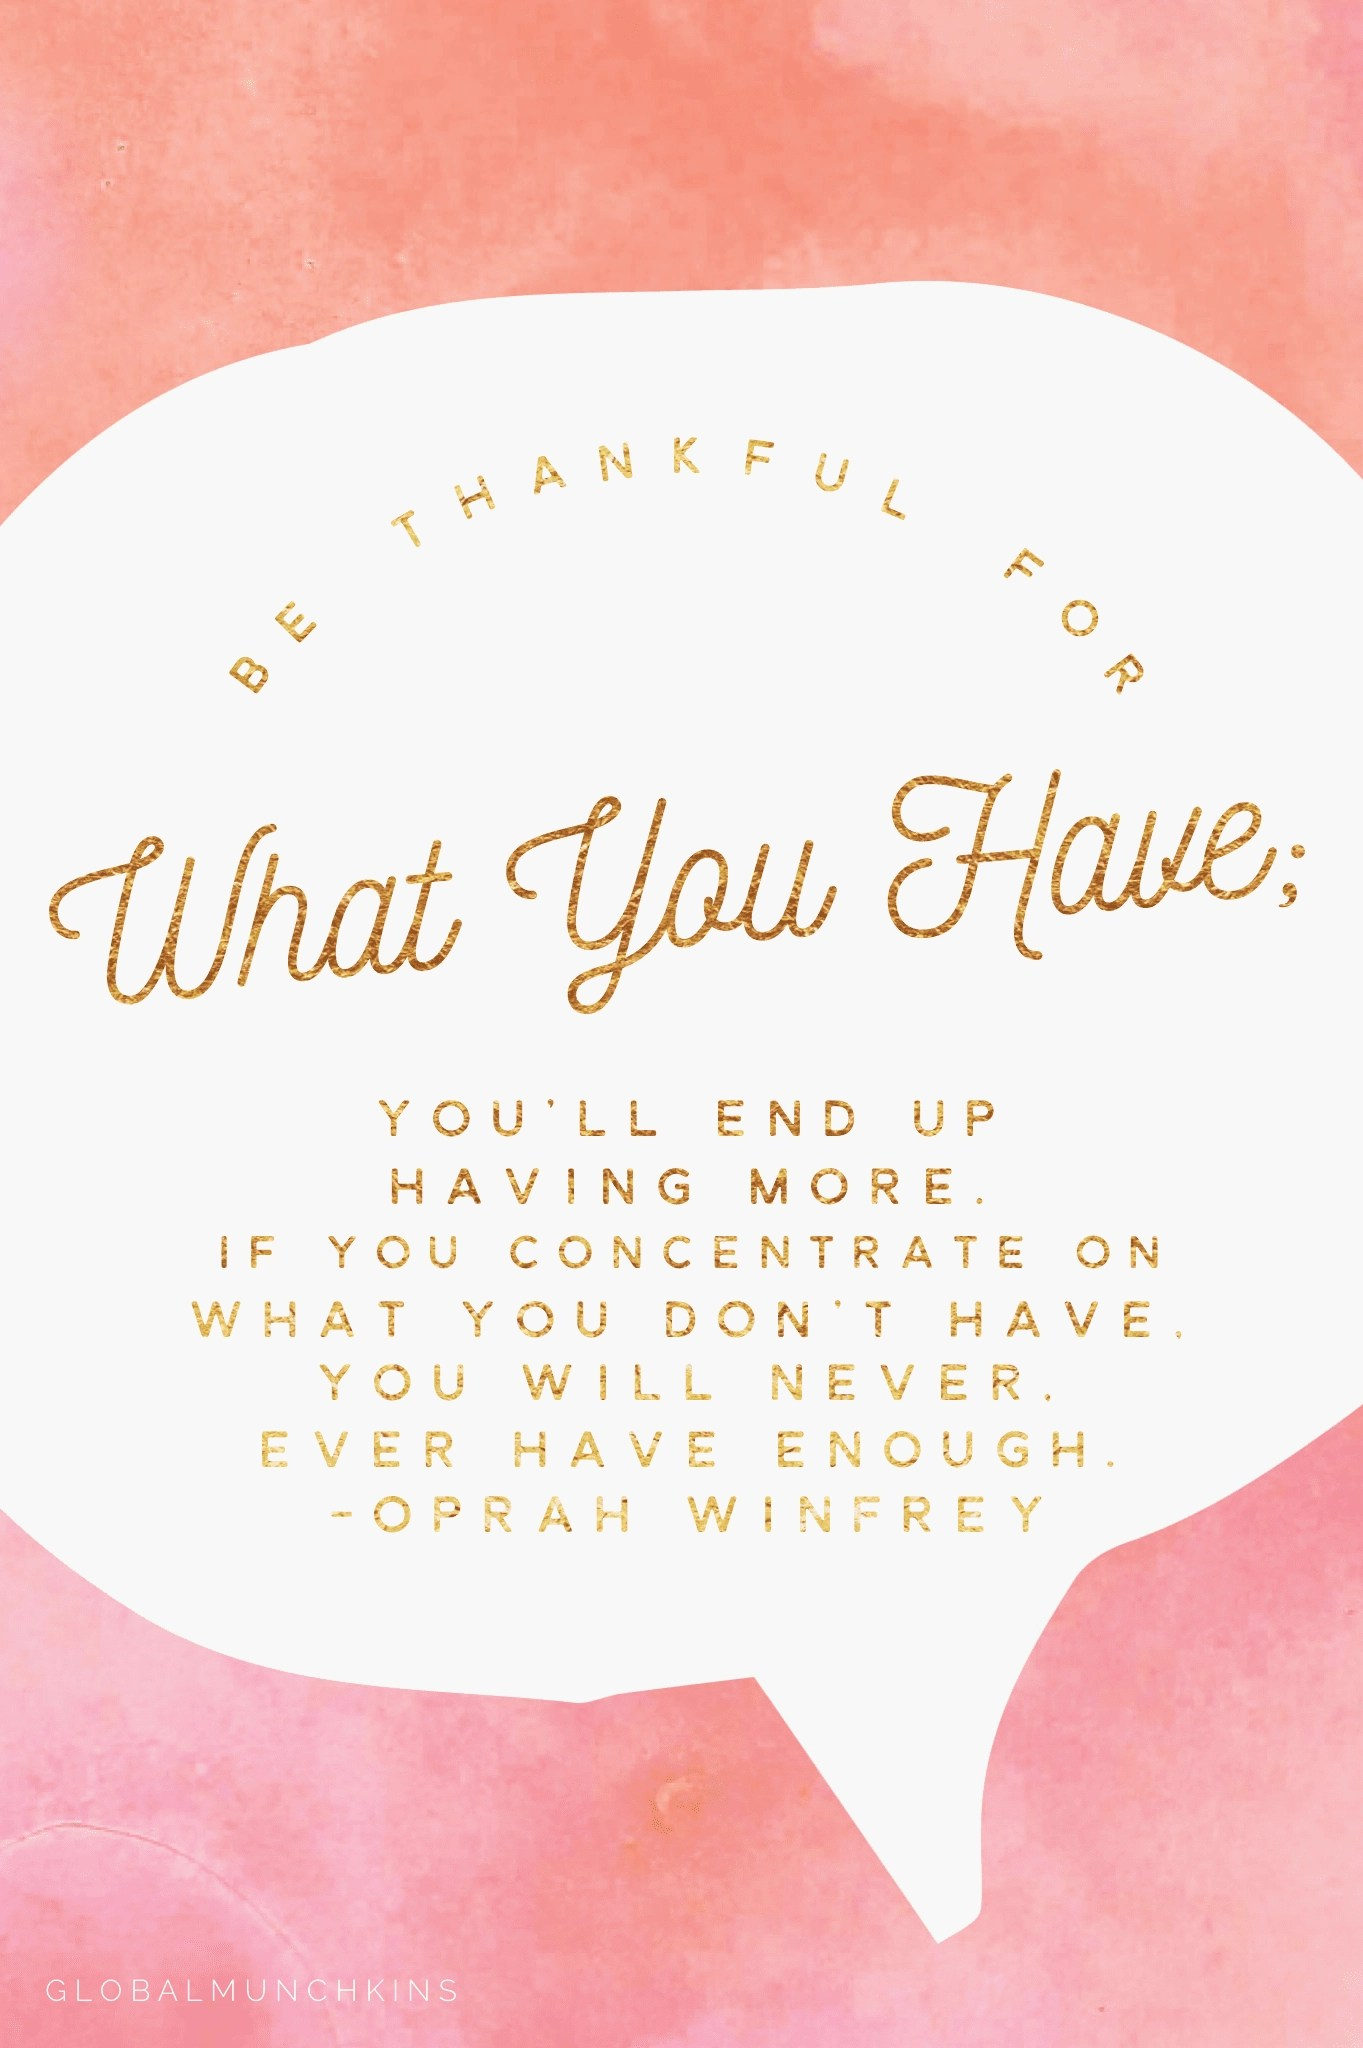 Delightful Quotes About Gratefulness. Gratitude Quotes. Best Inspirational Quotes.